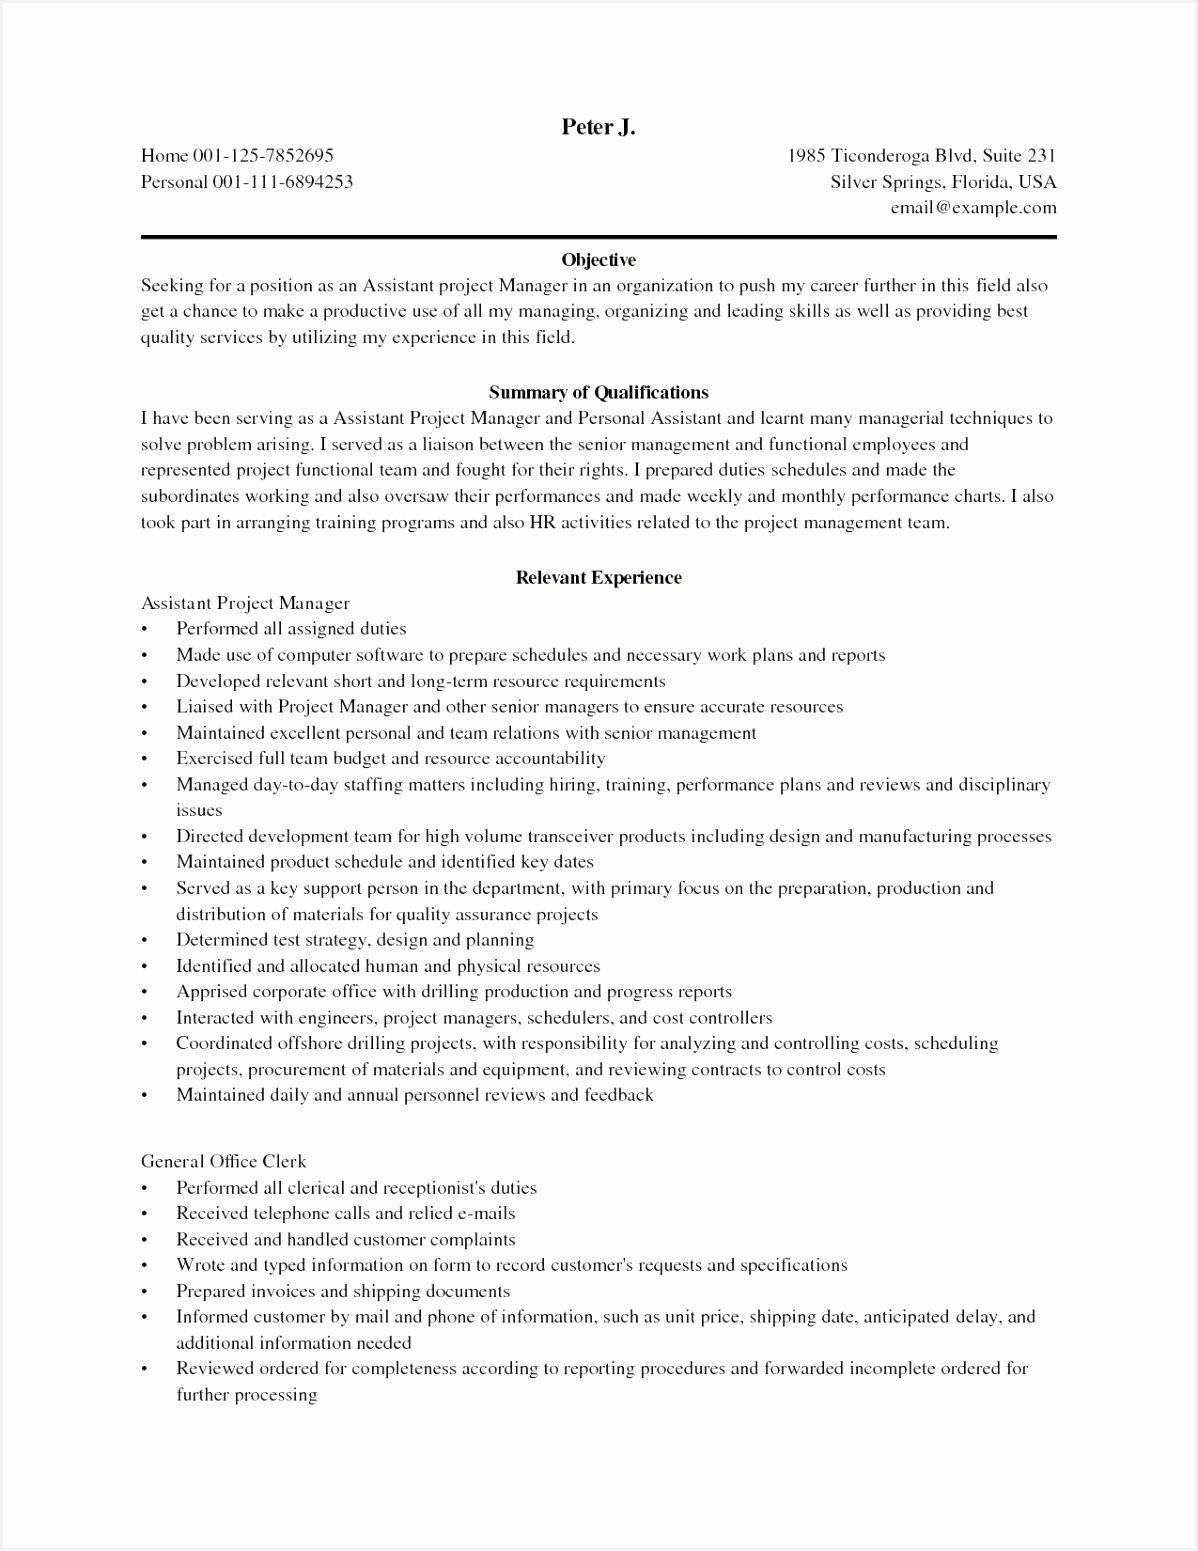 Manager assistant Sample Resume Fwdde Elegant Awesome Elegant Grapher Resume Sample Beautiful Resume Quotes 0d Of Manager assistant Sample Resume E2elo Luxury assistant Manager Job Description Resume Examples 29 Bank Manager